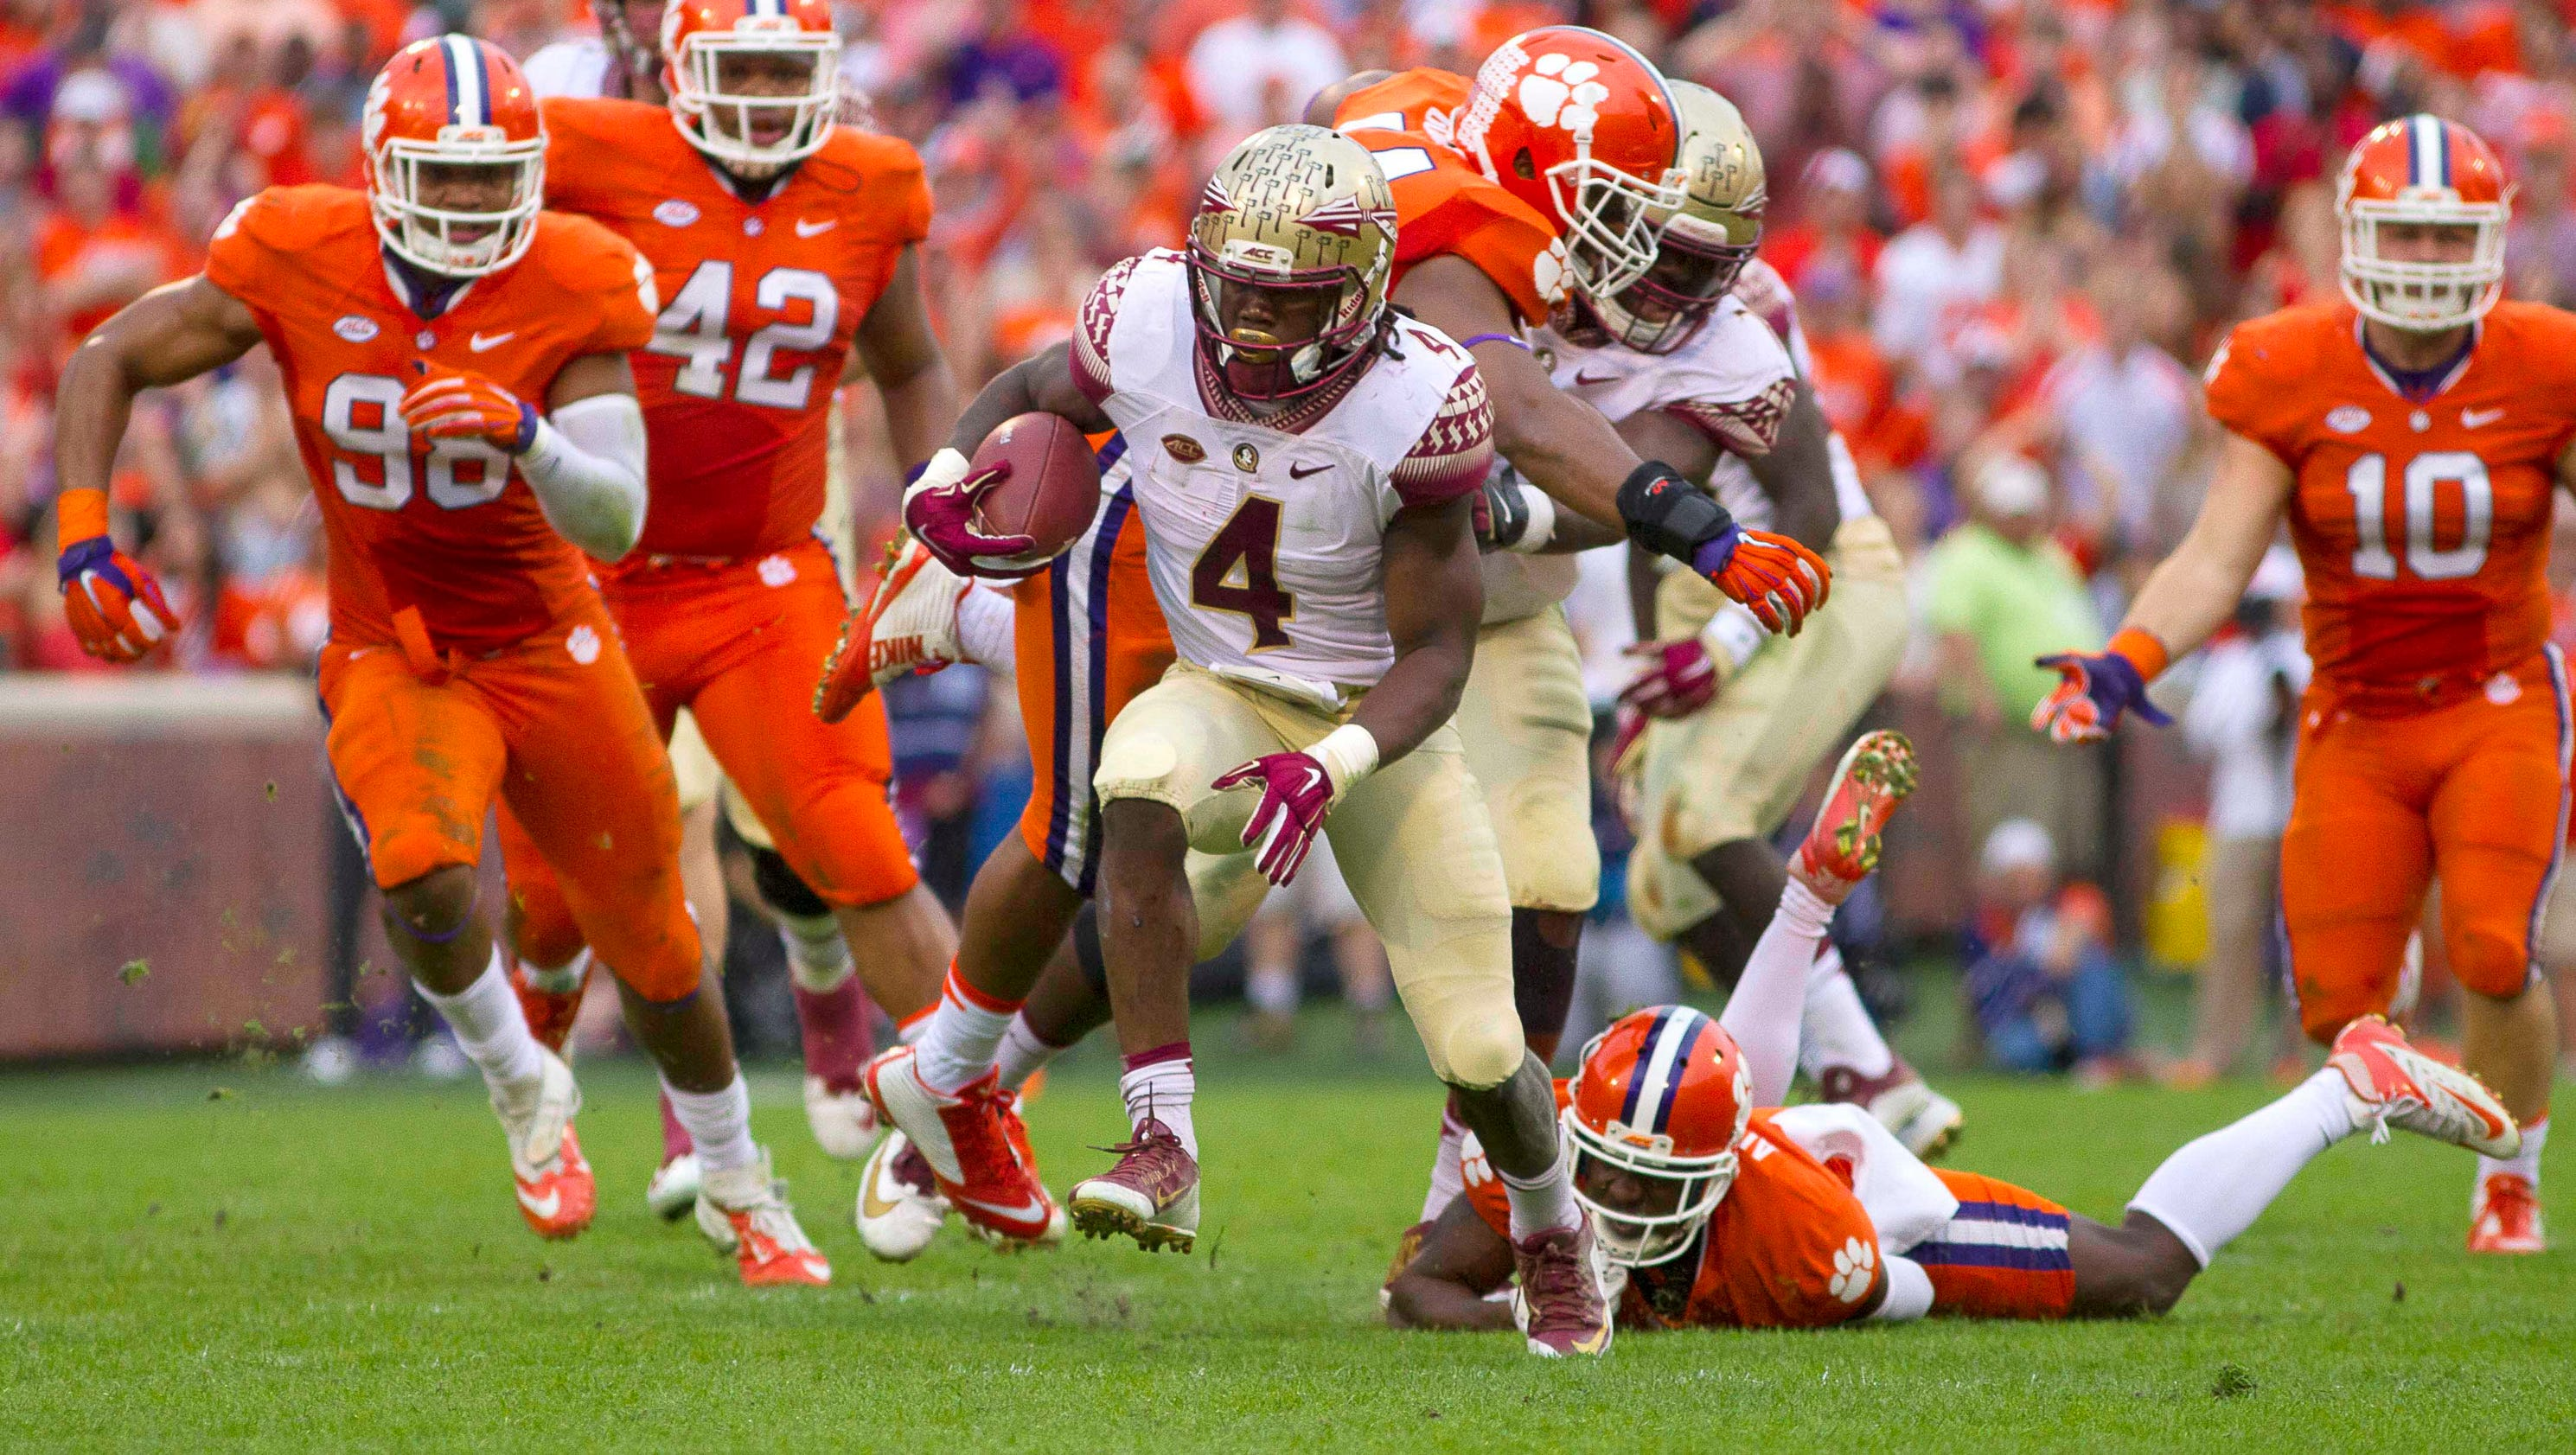 clemson chat Clemson tigers by chat sports 877 likes 8 talking about this home of the best fans of the national champion clemson tigers.